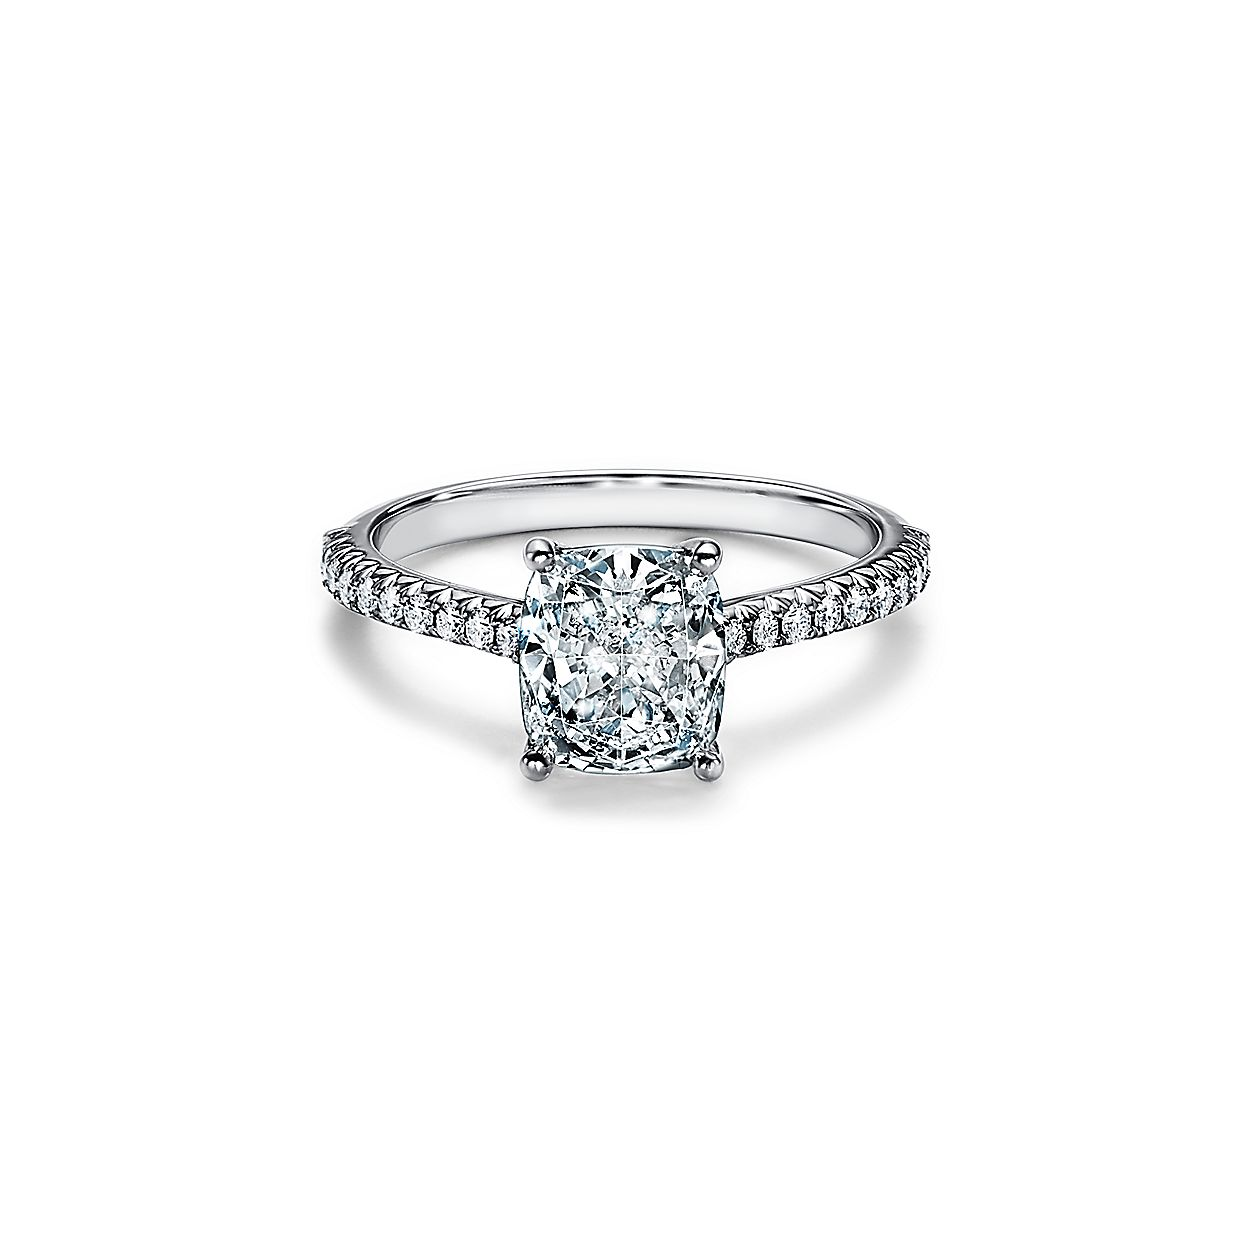 Tiffany Novo Cushion Cut Engagement Ring With A Pave Diamond Platinum Band